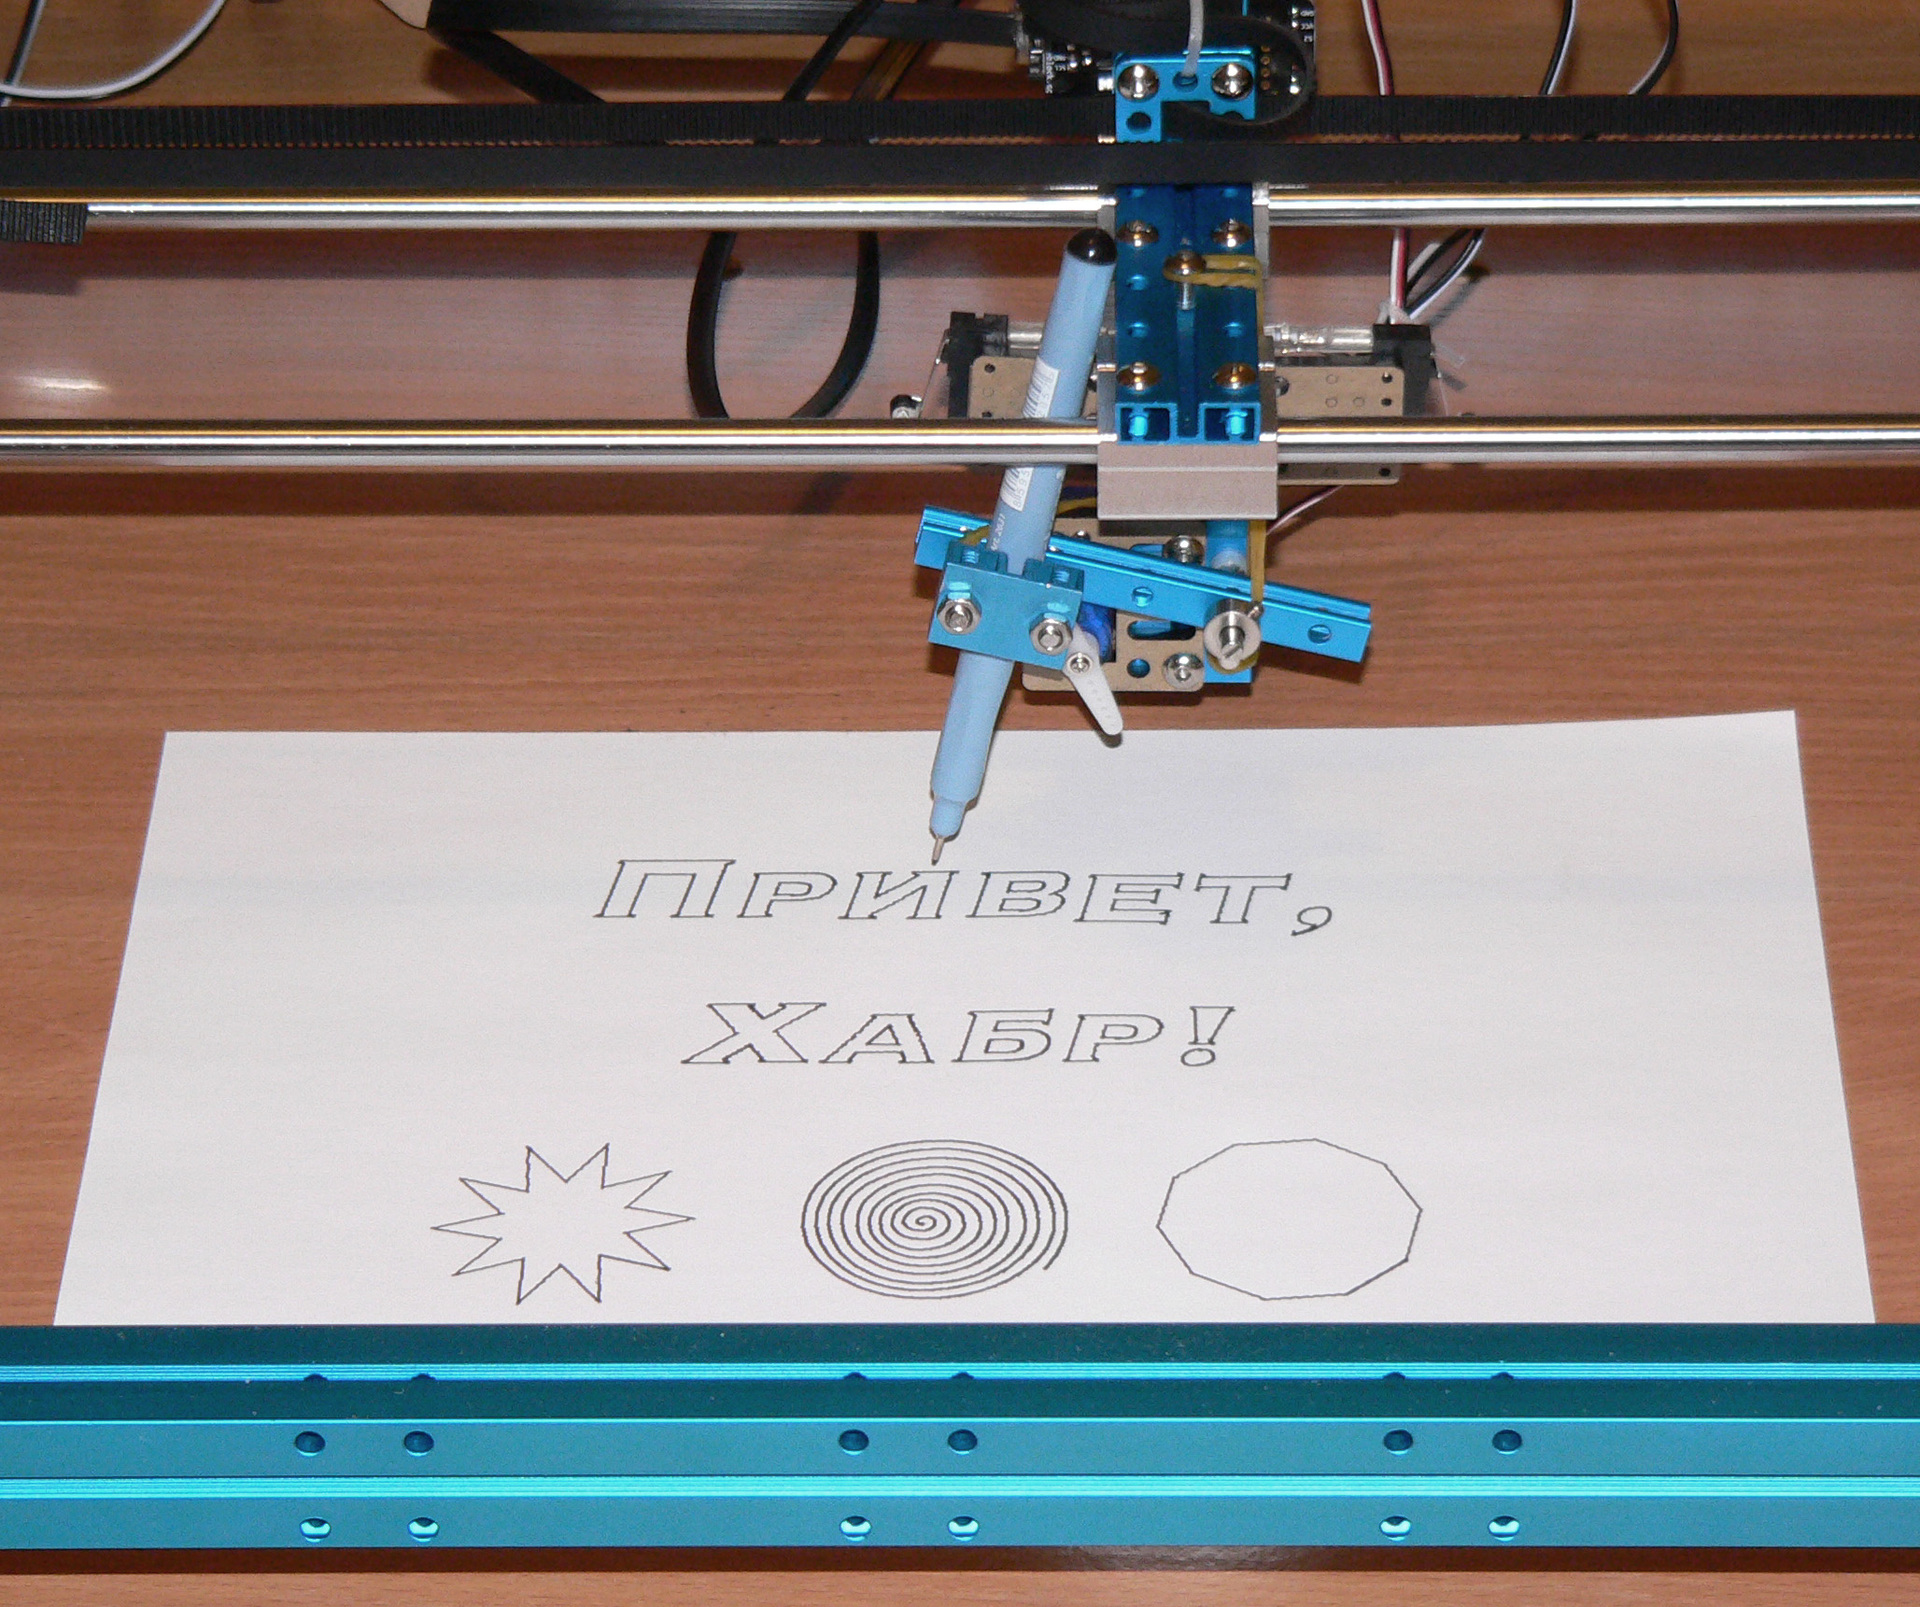 Photo of a plotter with a sheet of paper in which a drawing